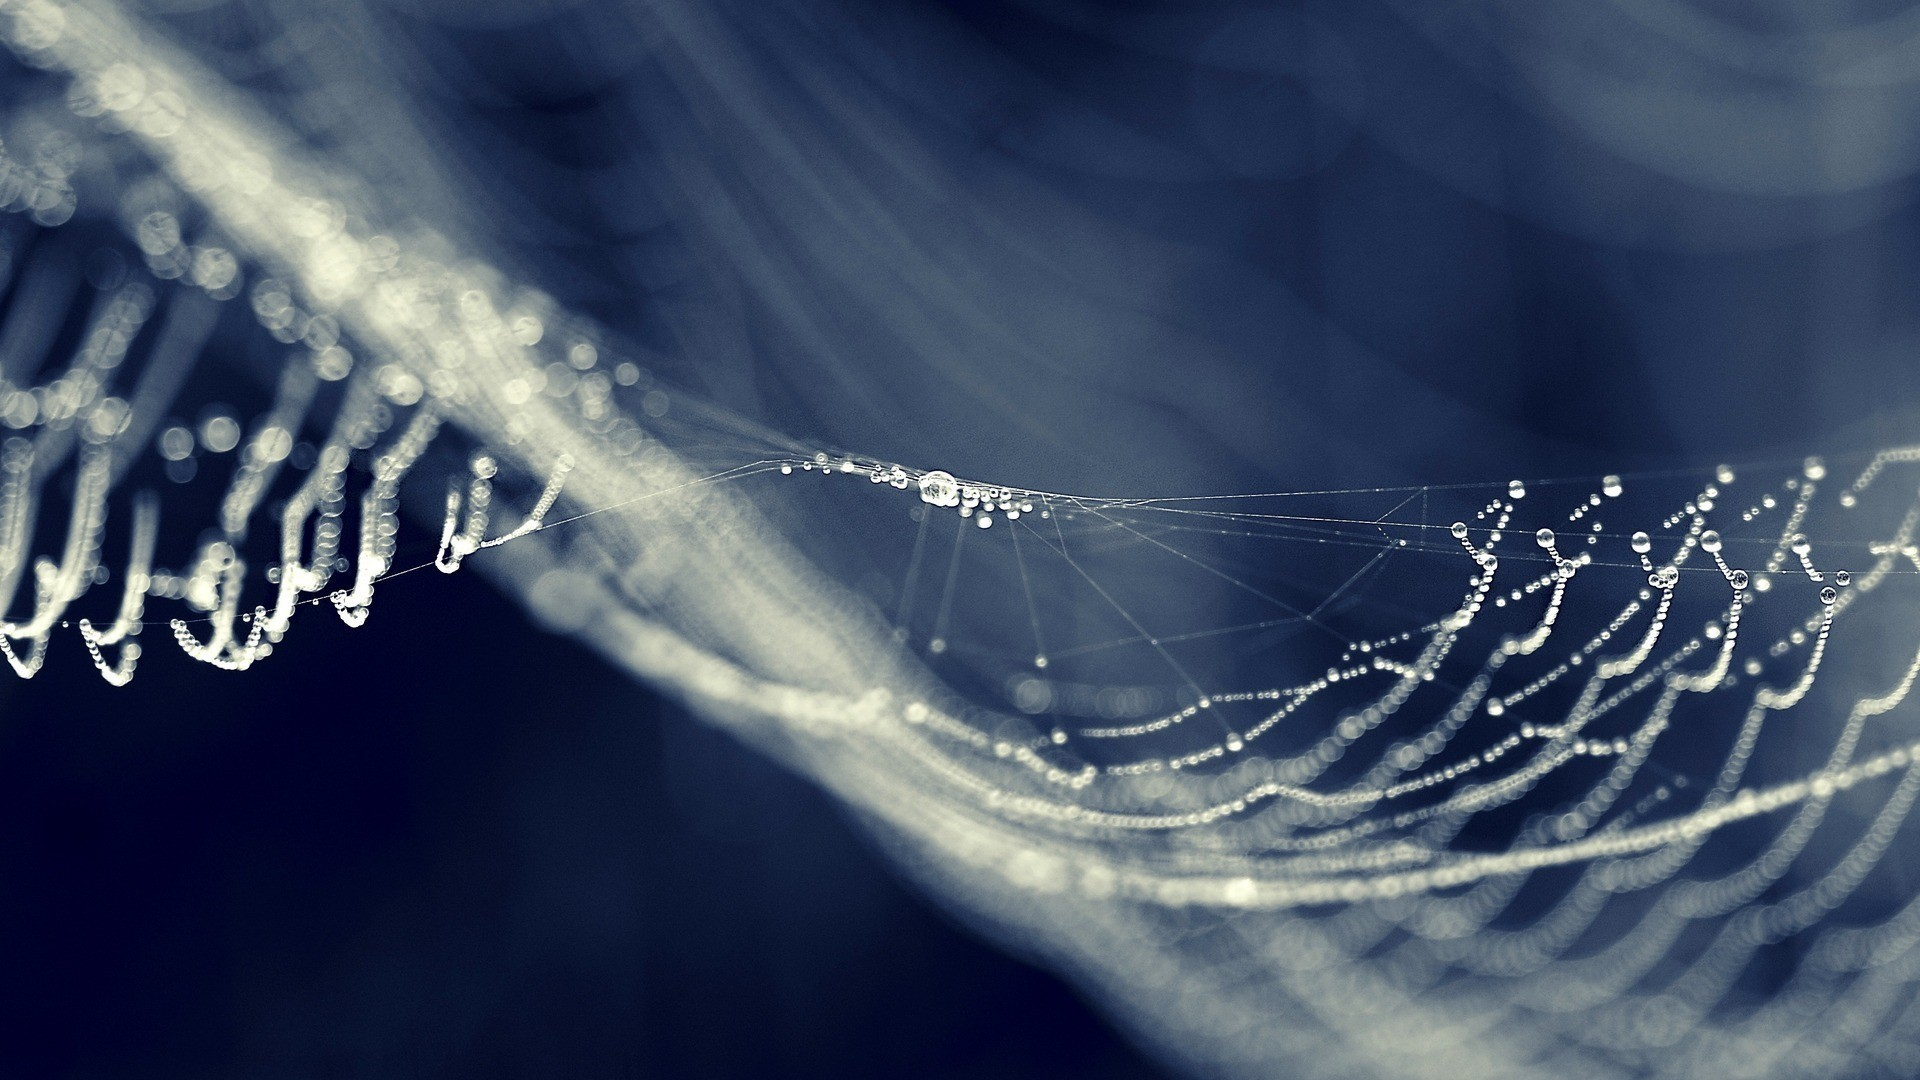 Blurred bokeh nature spider webs water drops 1920x1080